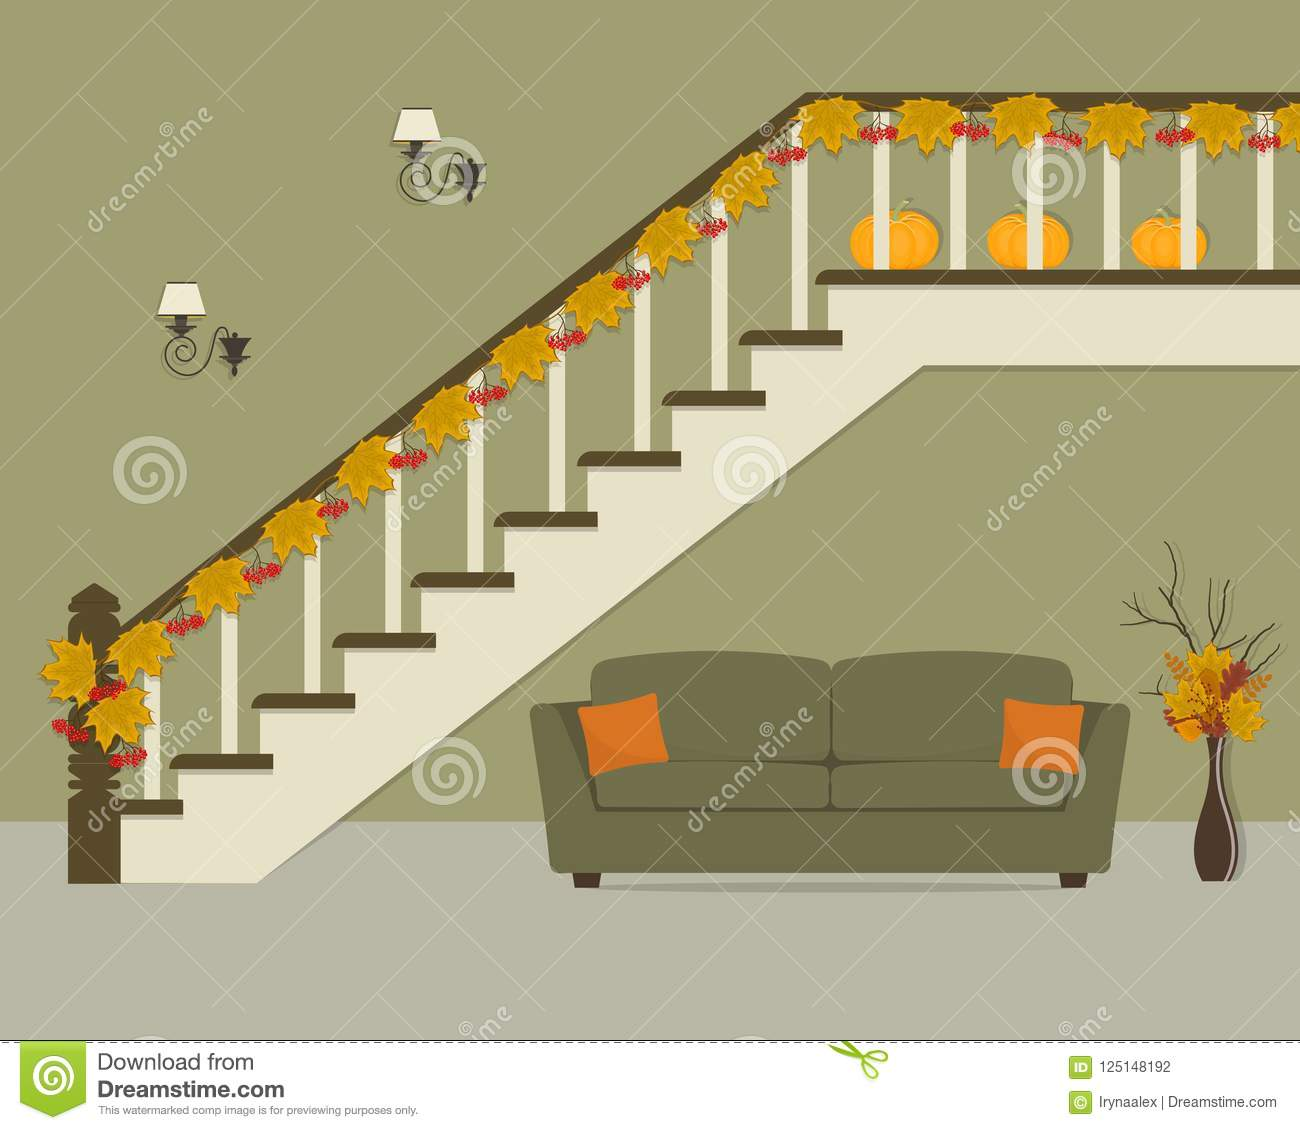 Download Green Sofa With Orange Pillows, Located Under The Stairs,  Decorated With Maple Leaves